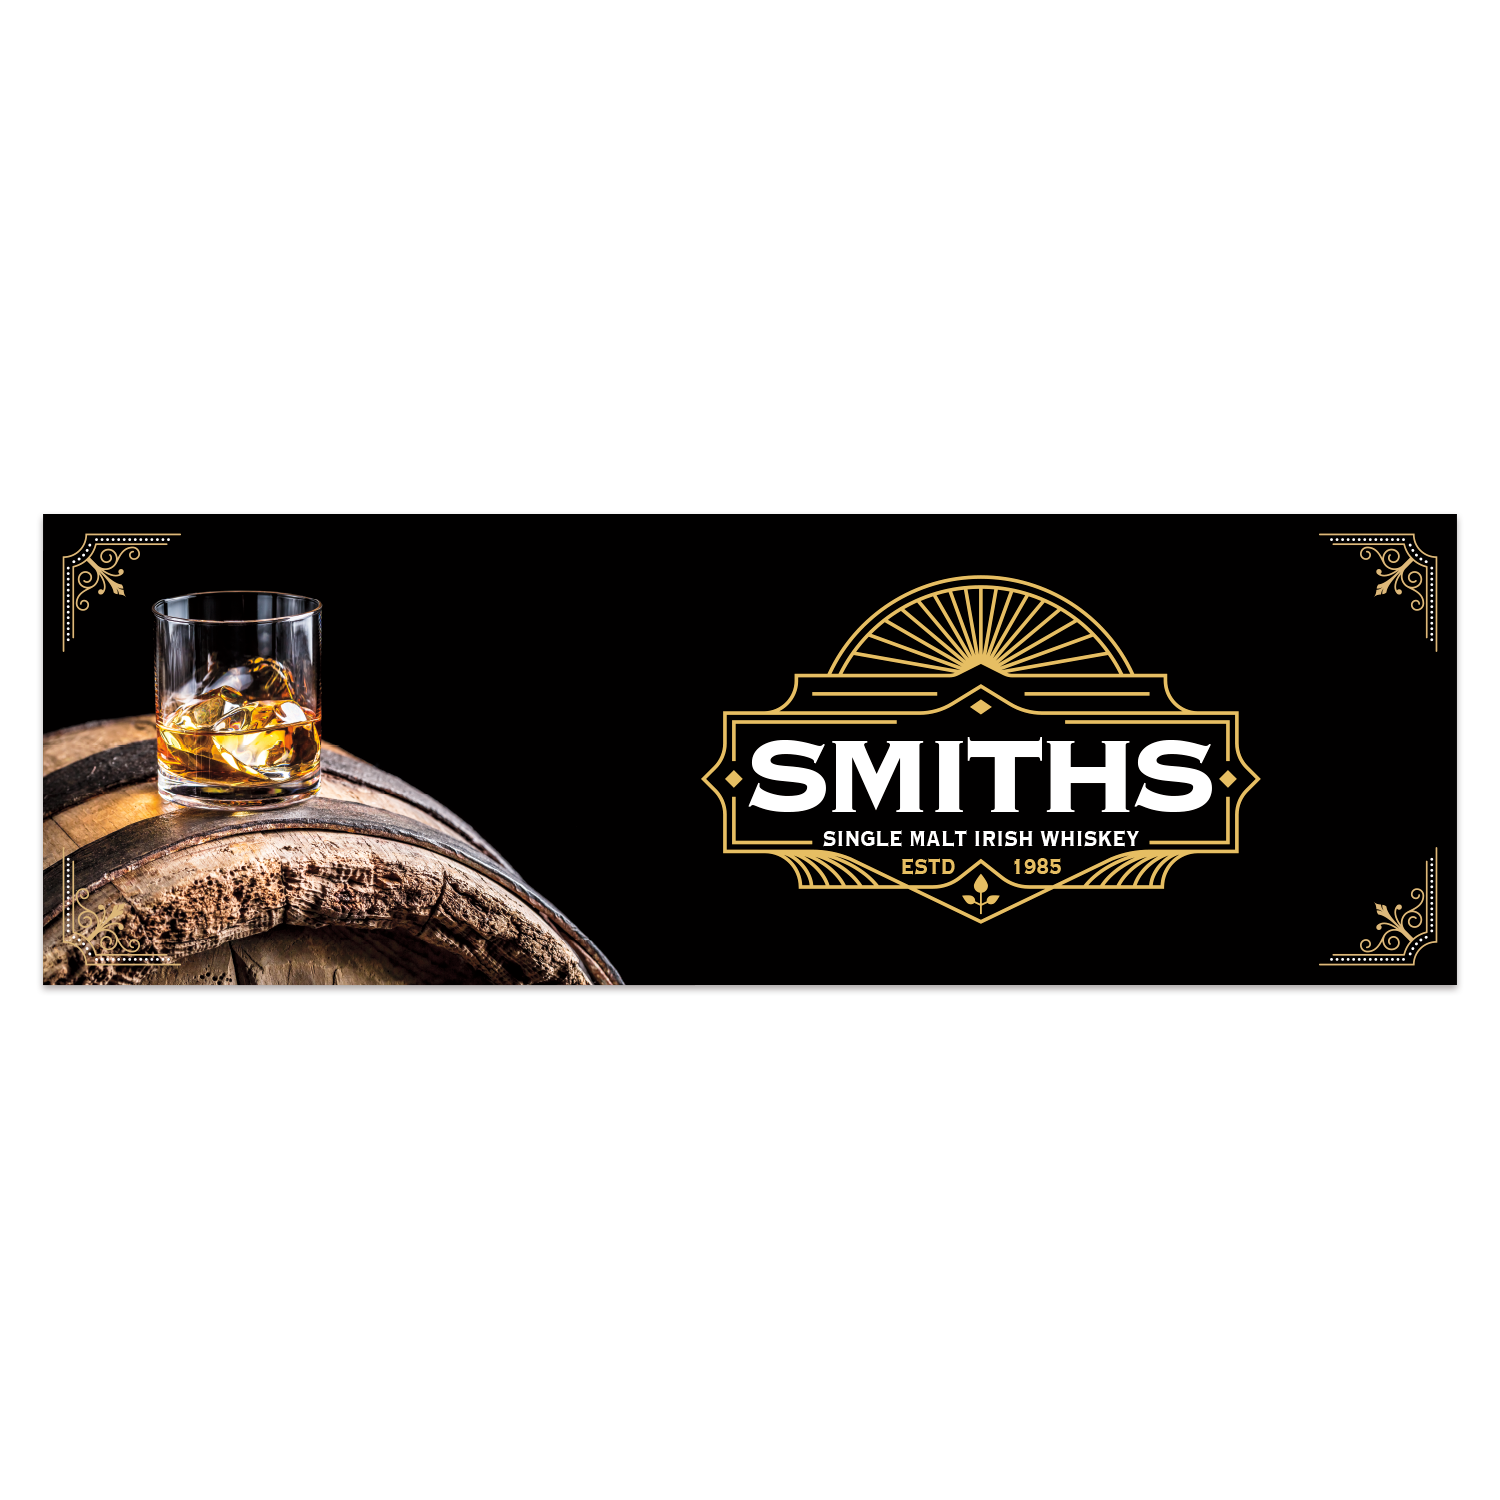 https://www.sswprinting.com/images/products_gallery_images/43623_Smiths-Whiskey_hi-res.png